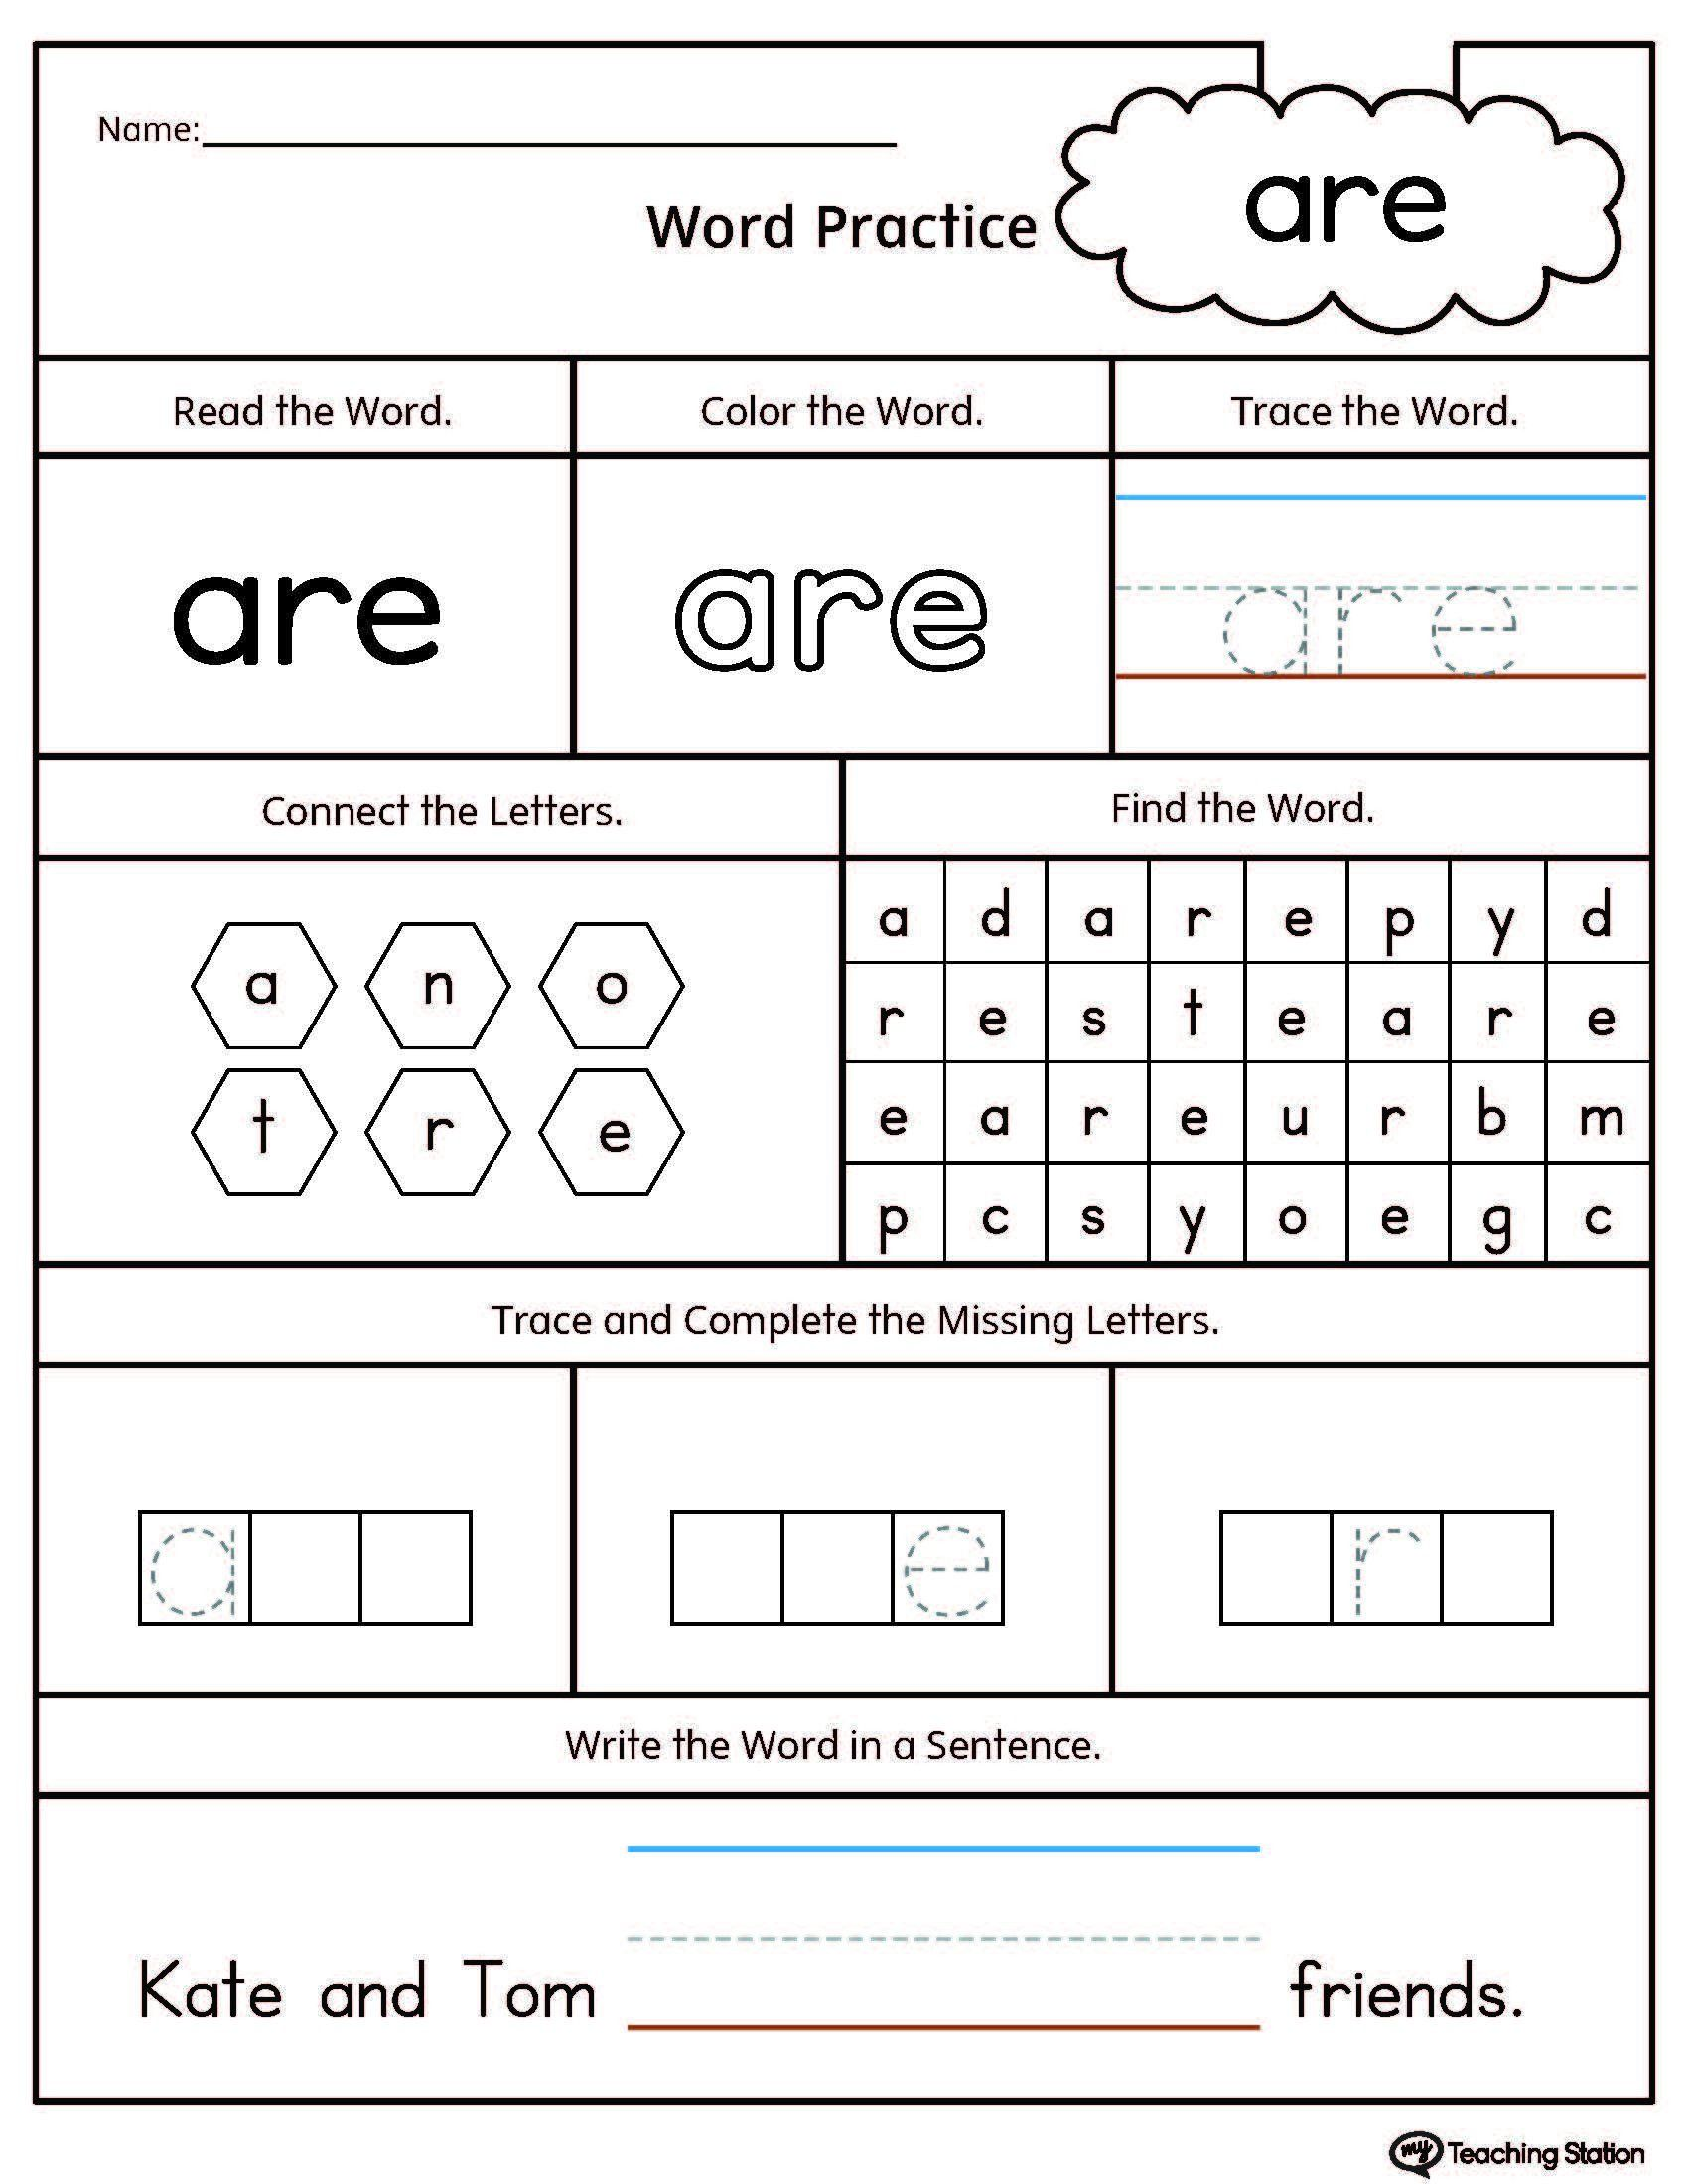 Pin On Preschool Sight Words